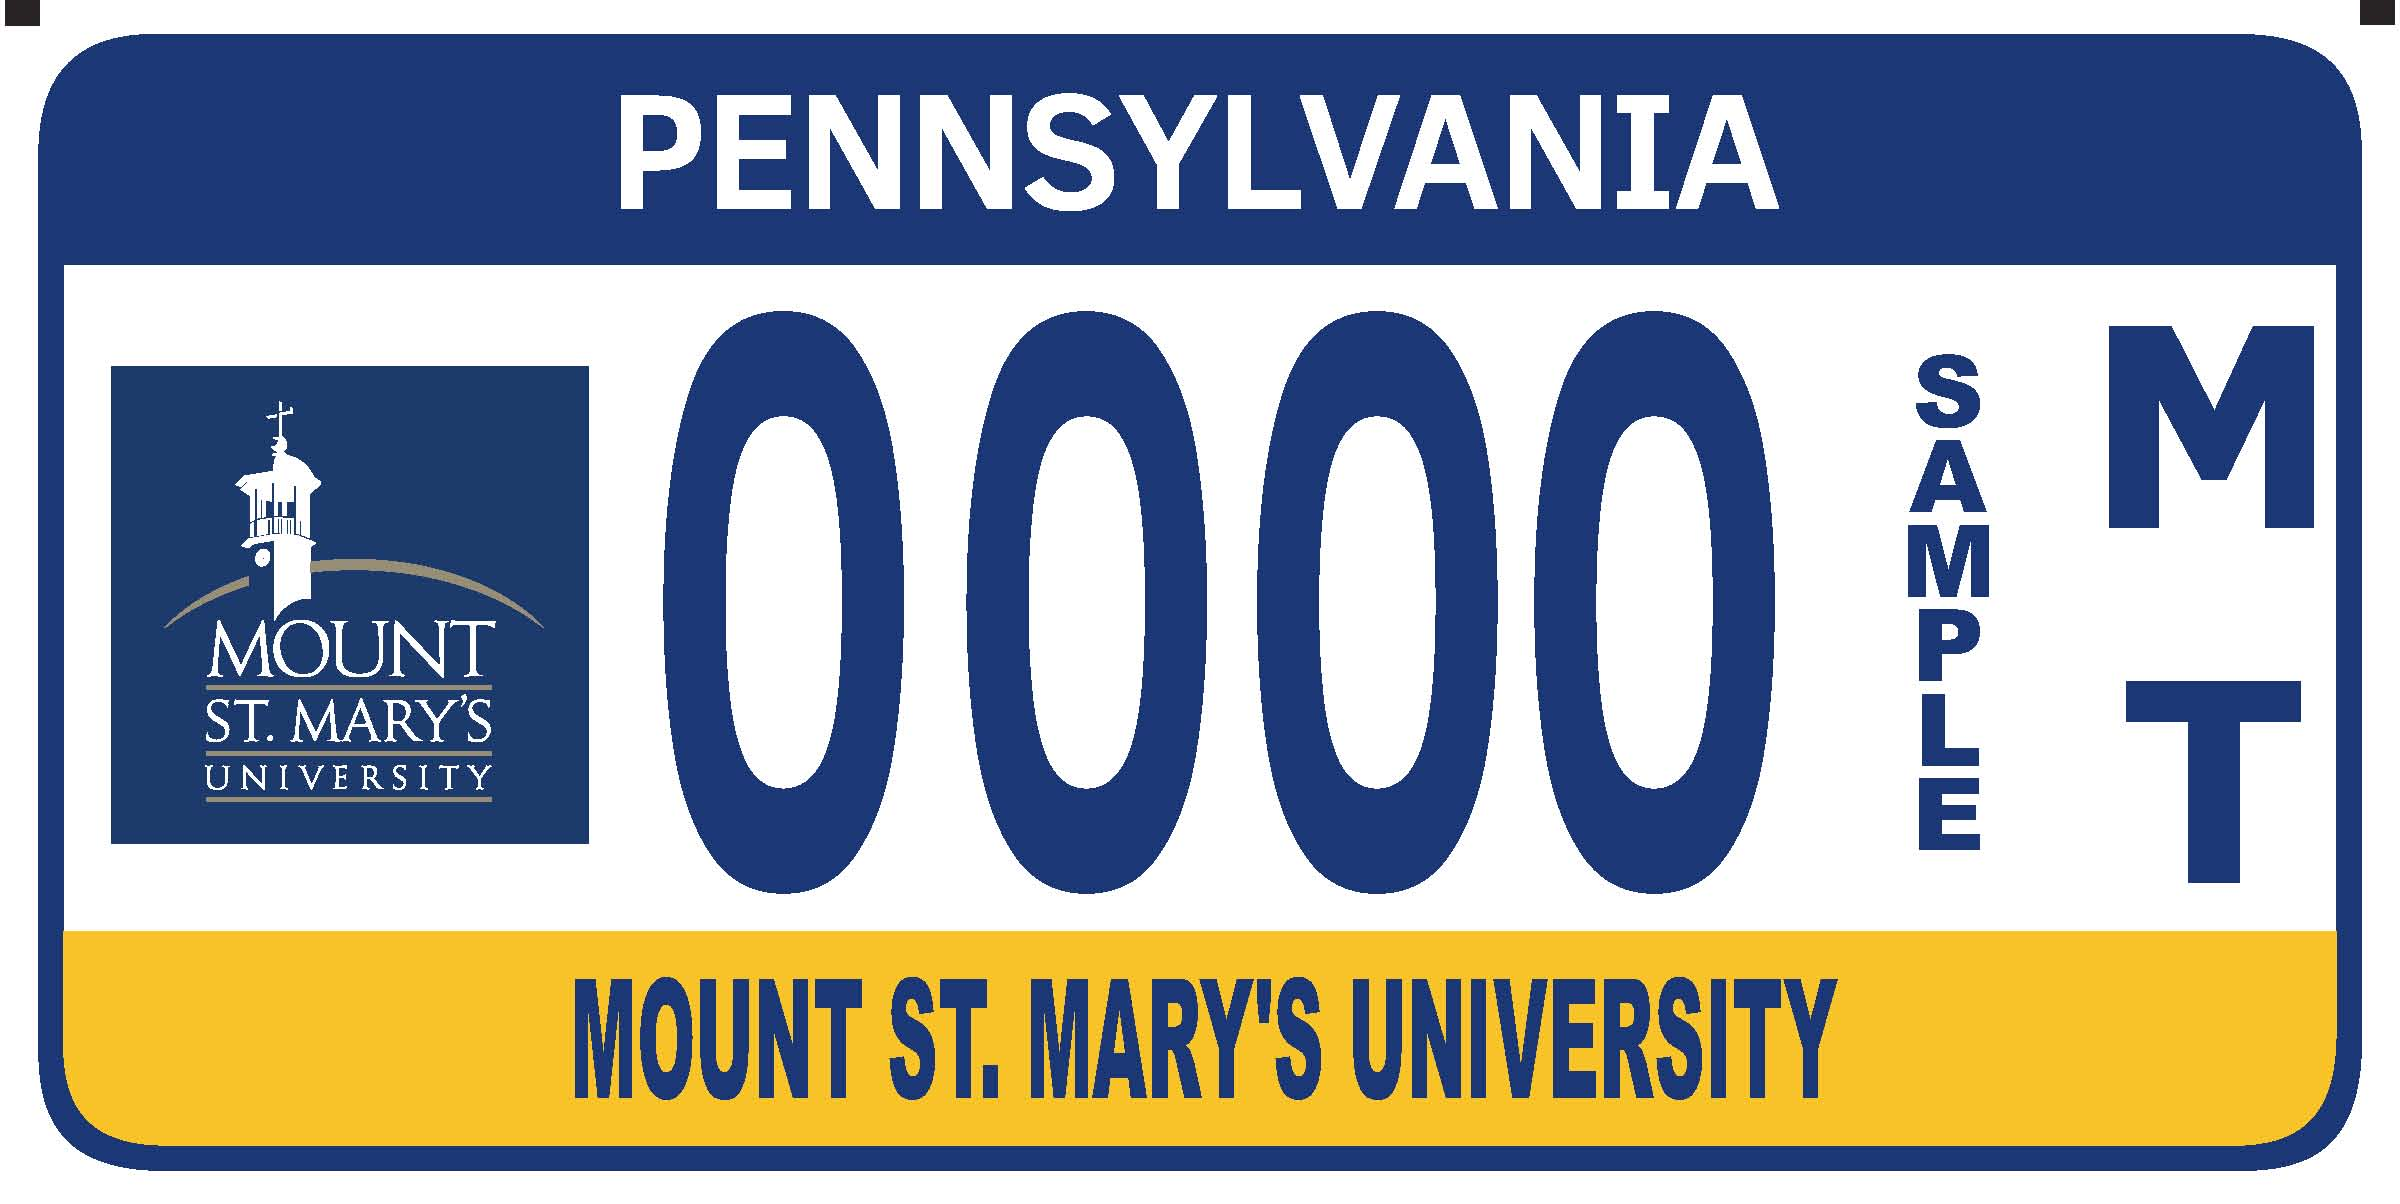 Mount. St. Mary's University